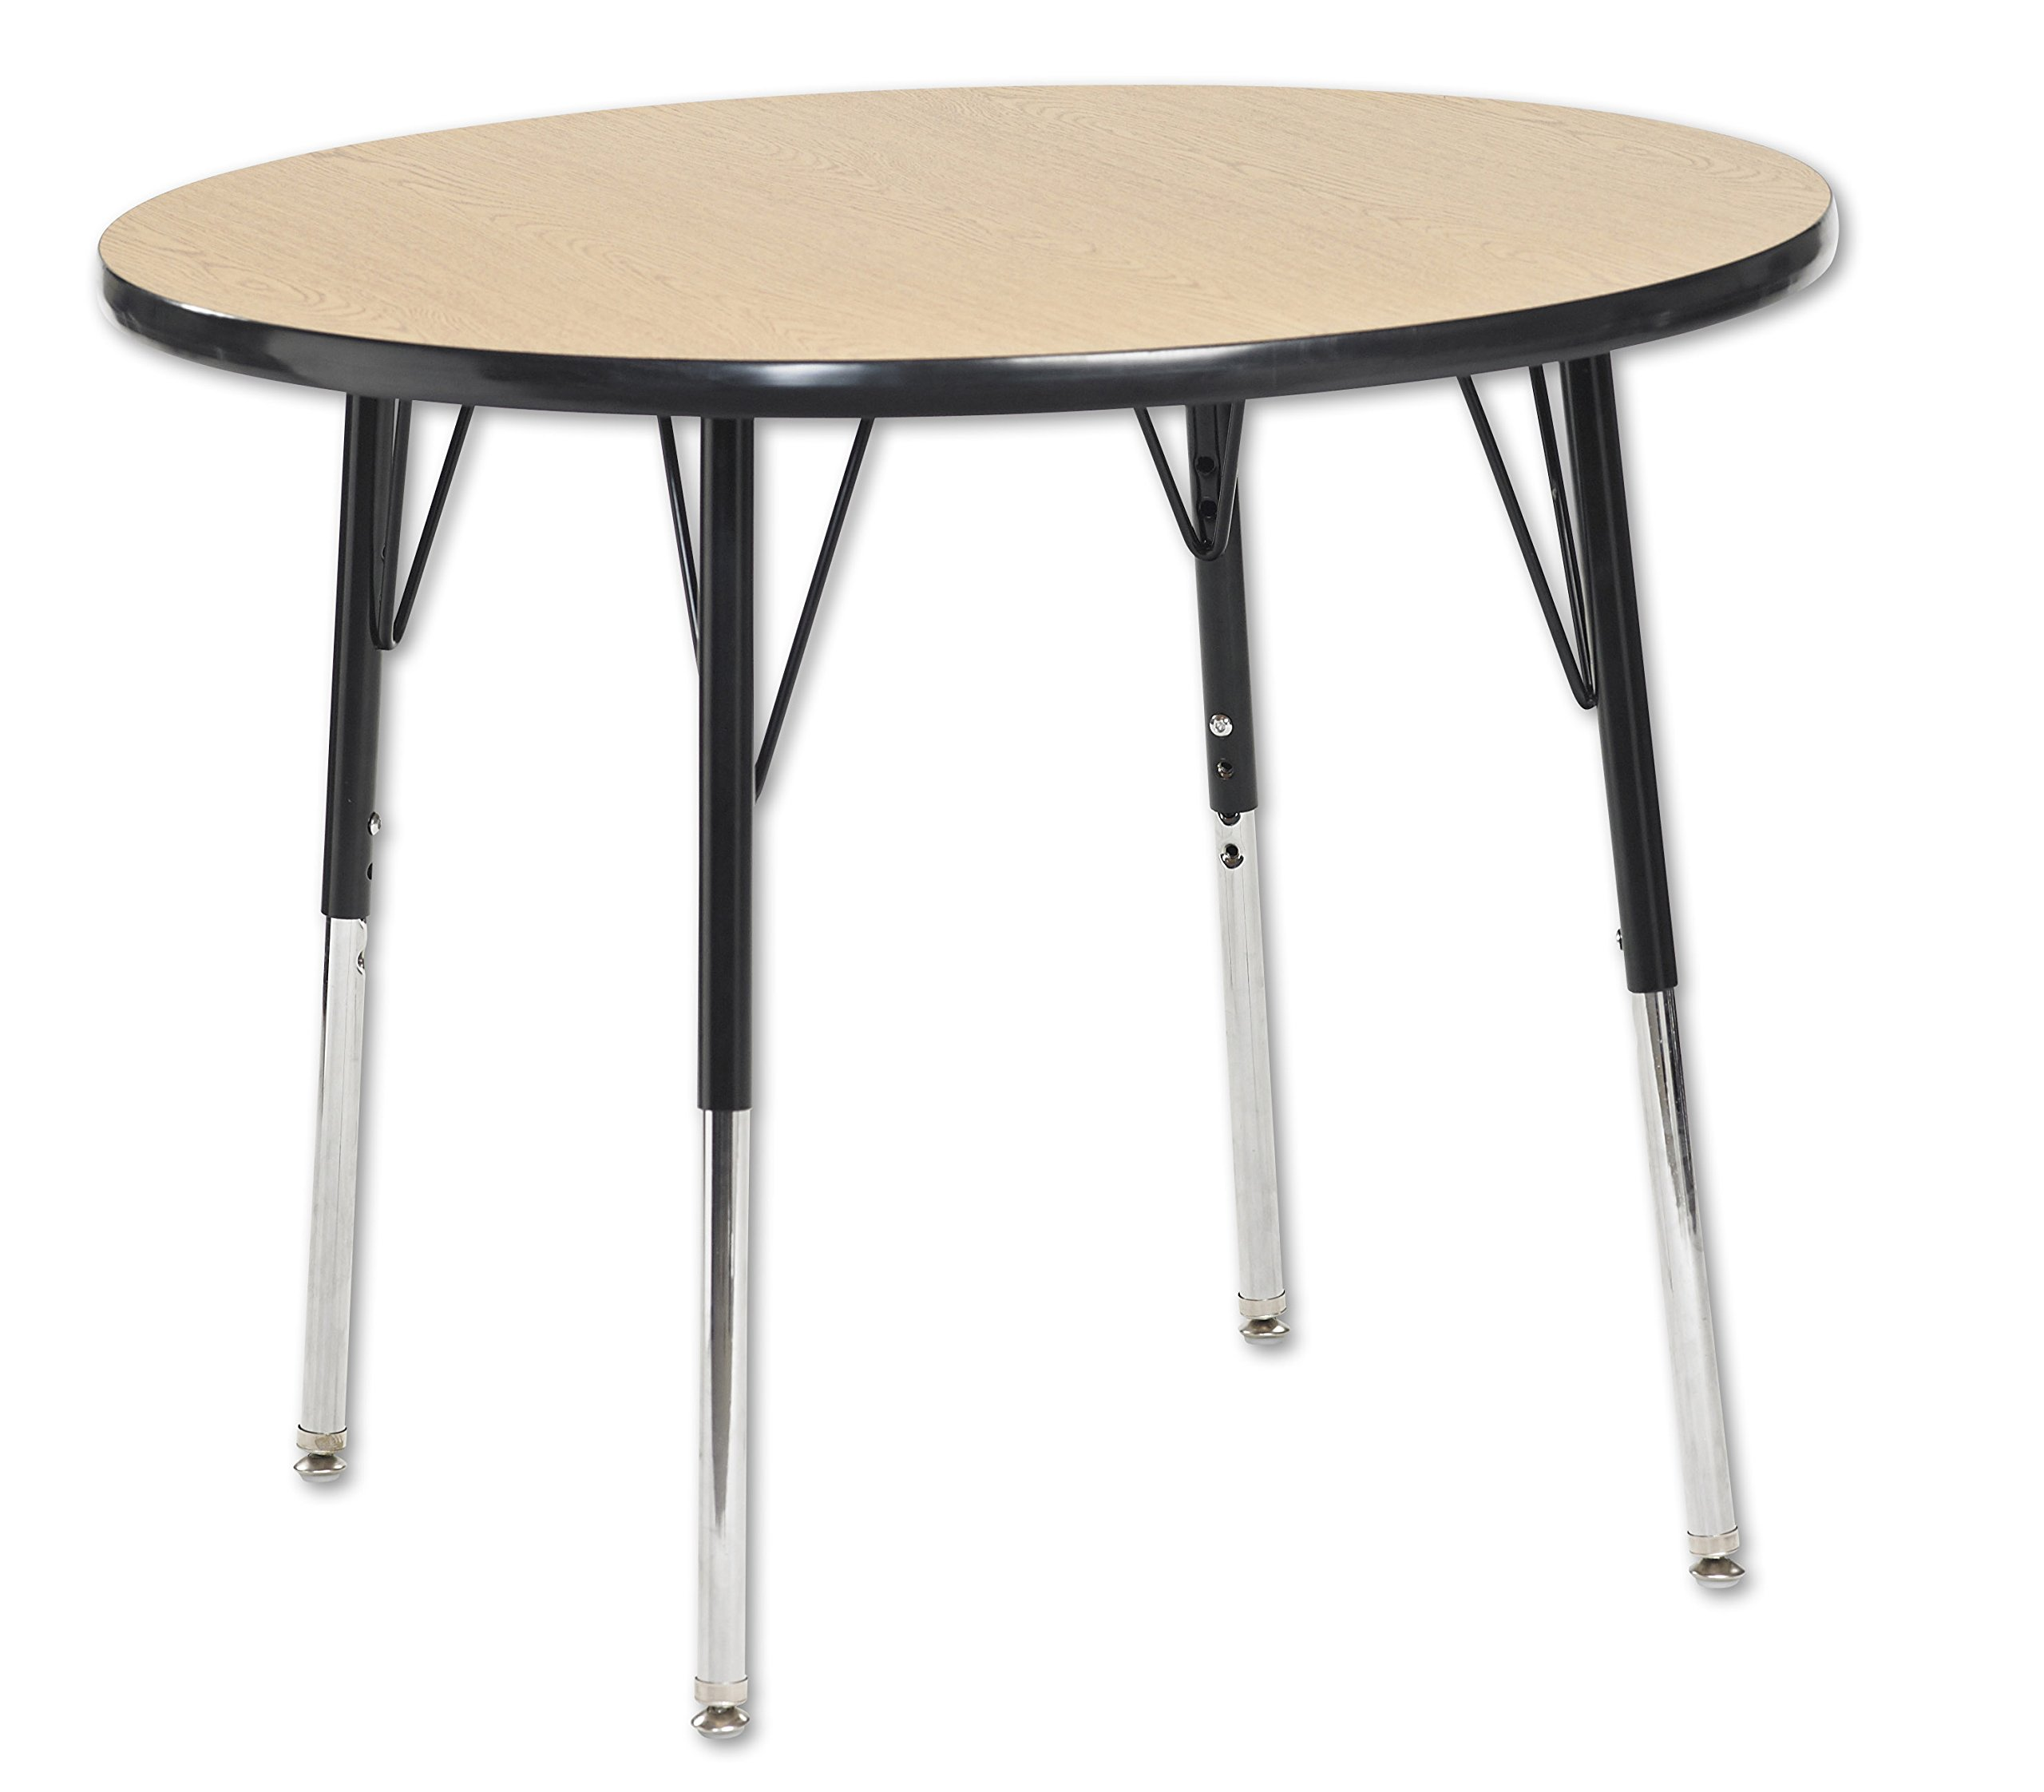 ECR4Kids T-Mold 36'' Round Activity School Table, Toddler Legs w/ Swivel Glides, Adjustable Height 15-23 inch (Oak/Black)